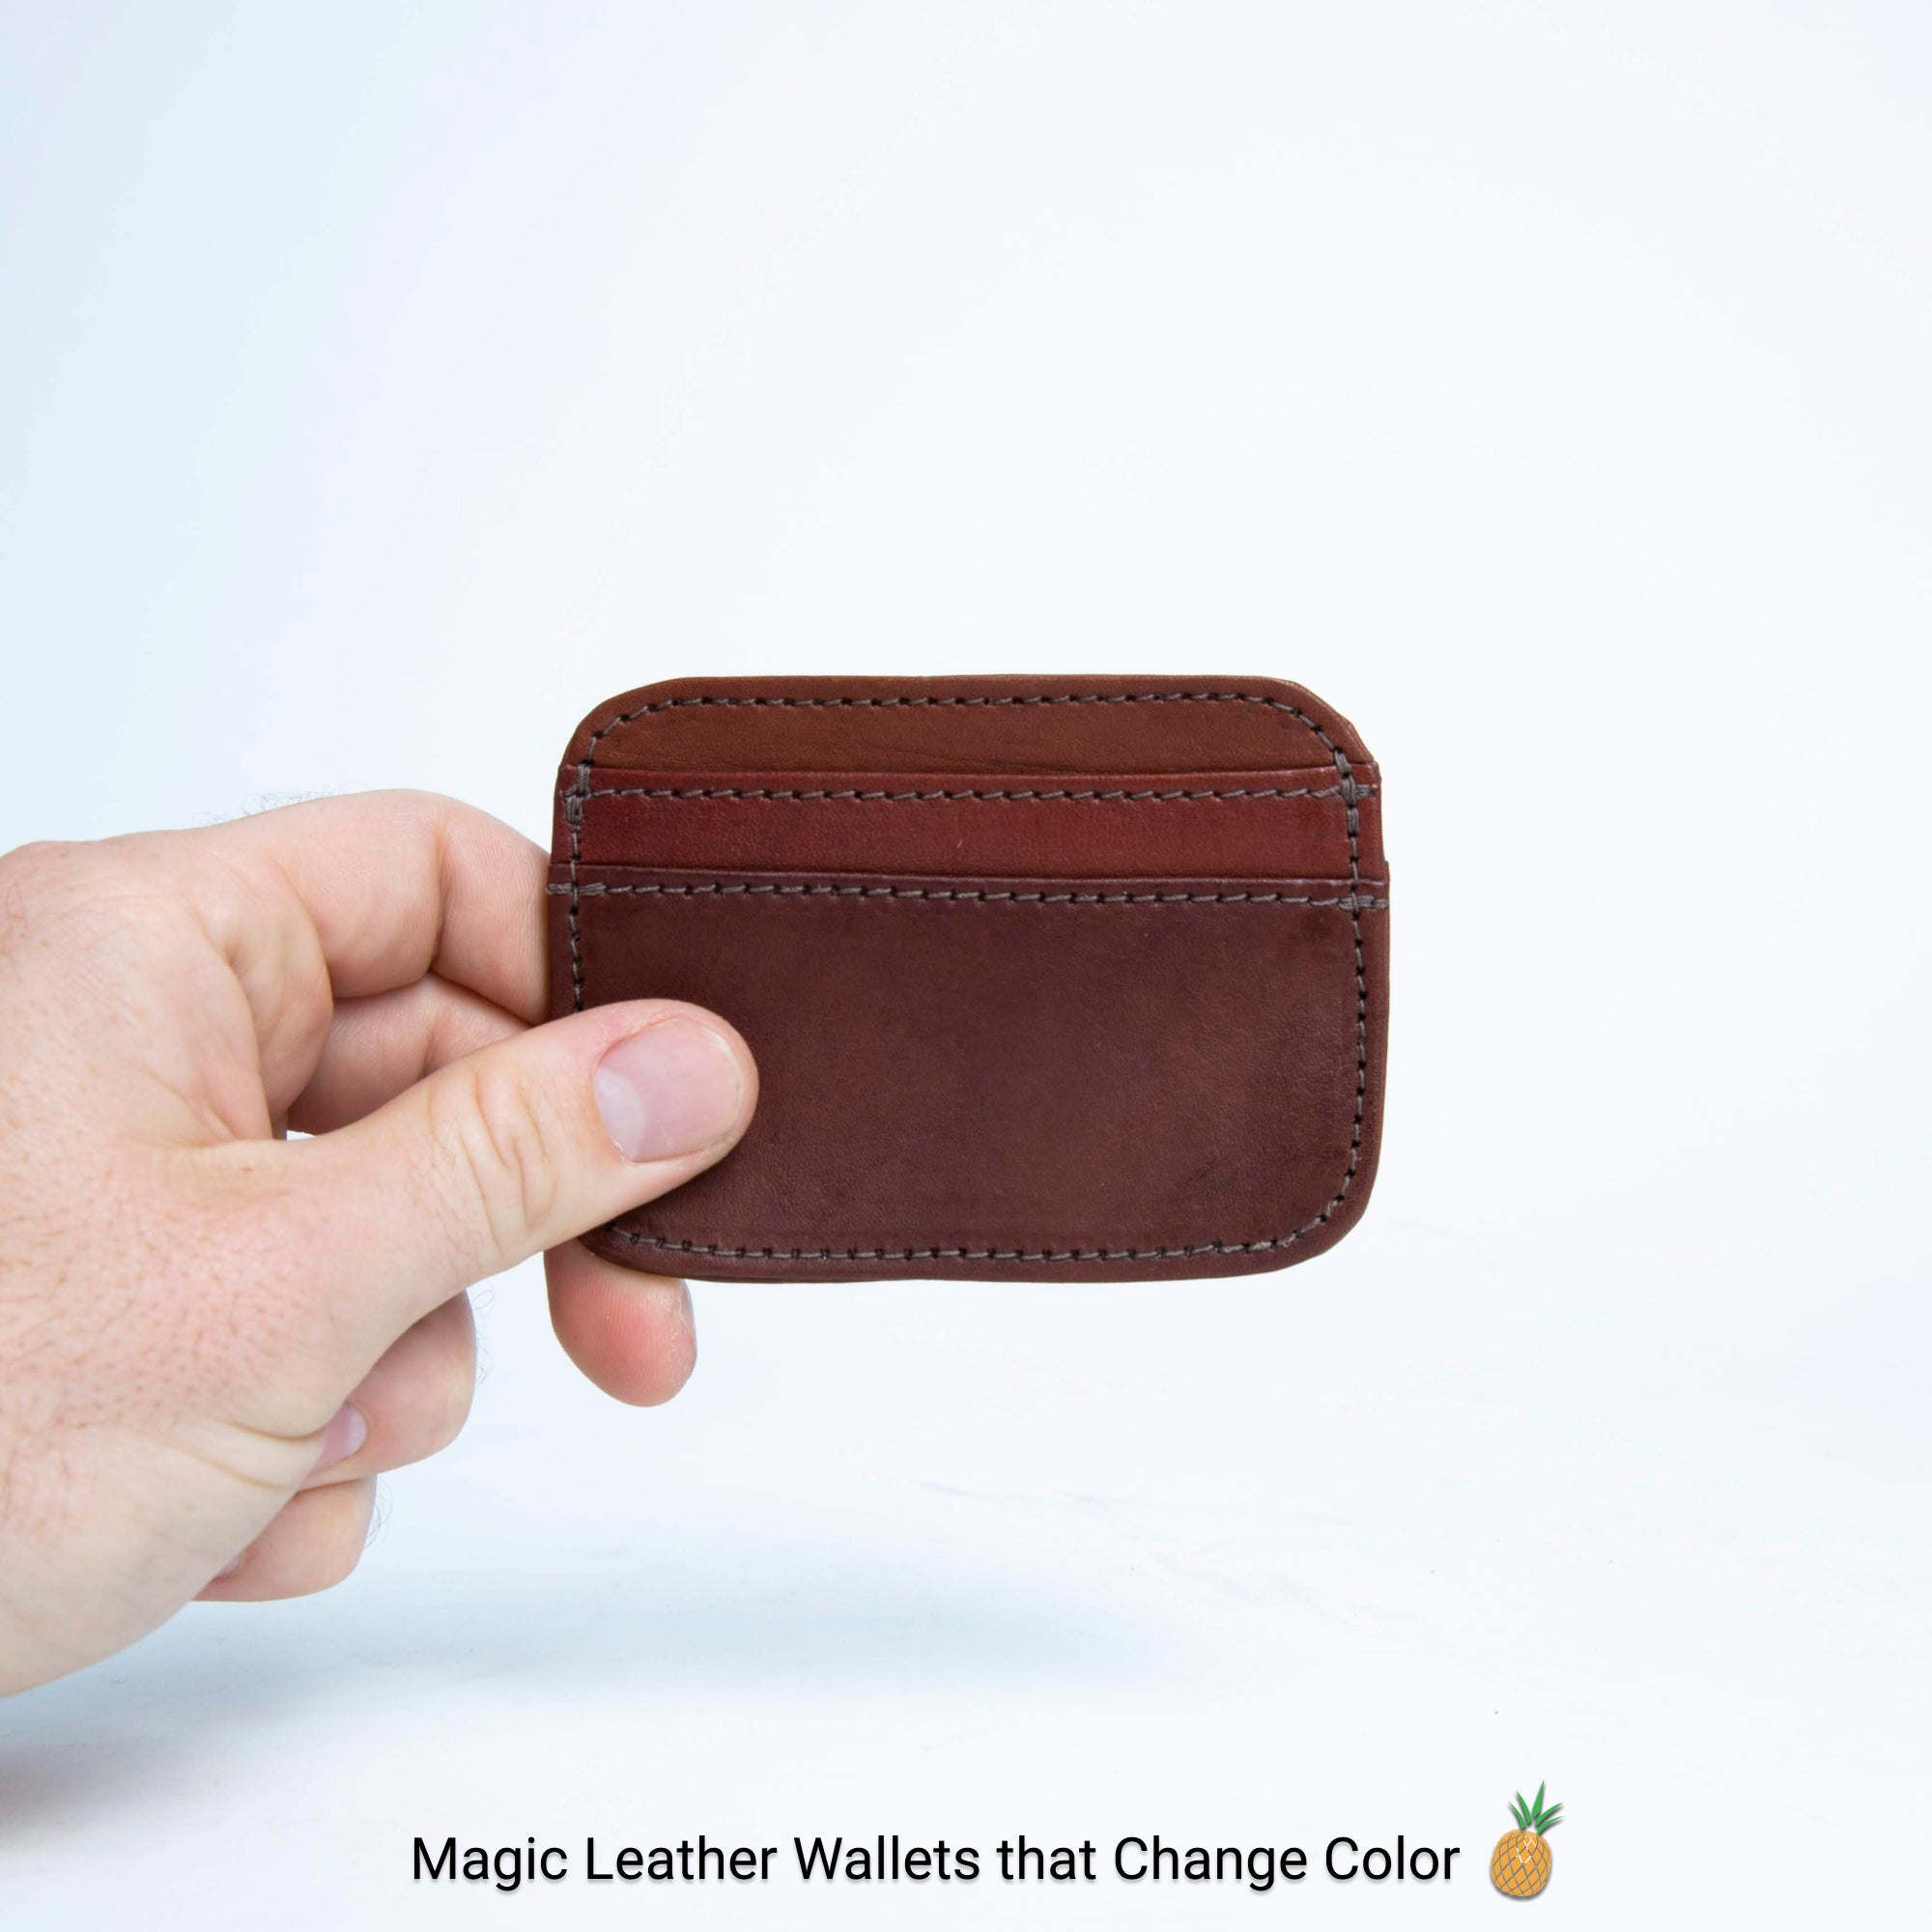 Bati | Brown Leather Credit Card Wallet | Card Wallet | Credit Card Case | Leather Wallets | Mens Leather Wallet | Wallets for Women | Ladies Wallet | Small Wallet | Bifold Wallet | Wallet Purse | Bati Handmade Leather Wallets | Brown Wallet | Brown Leather Wallet